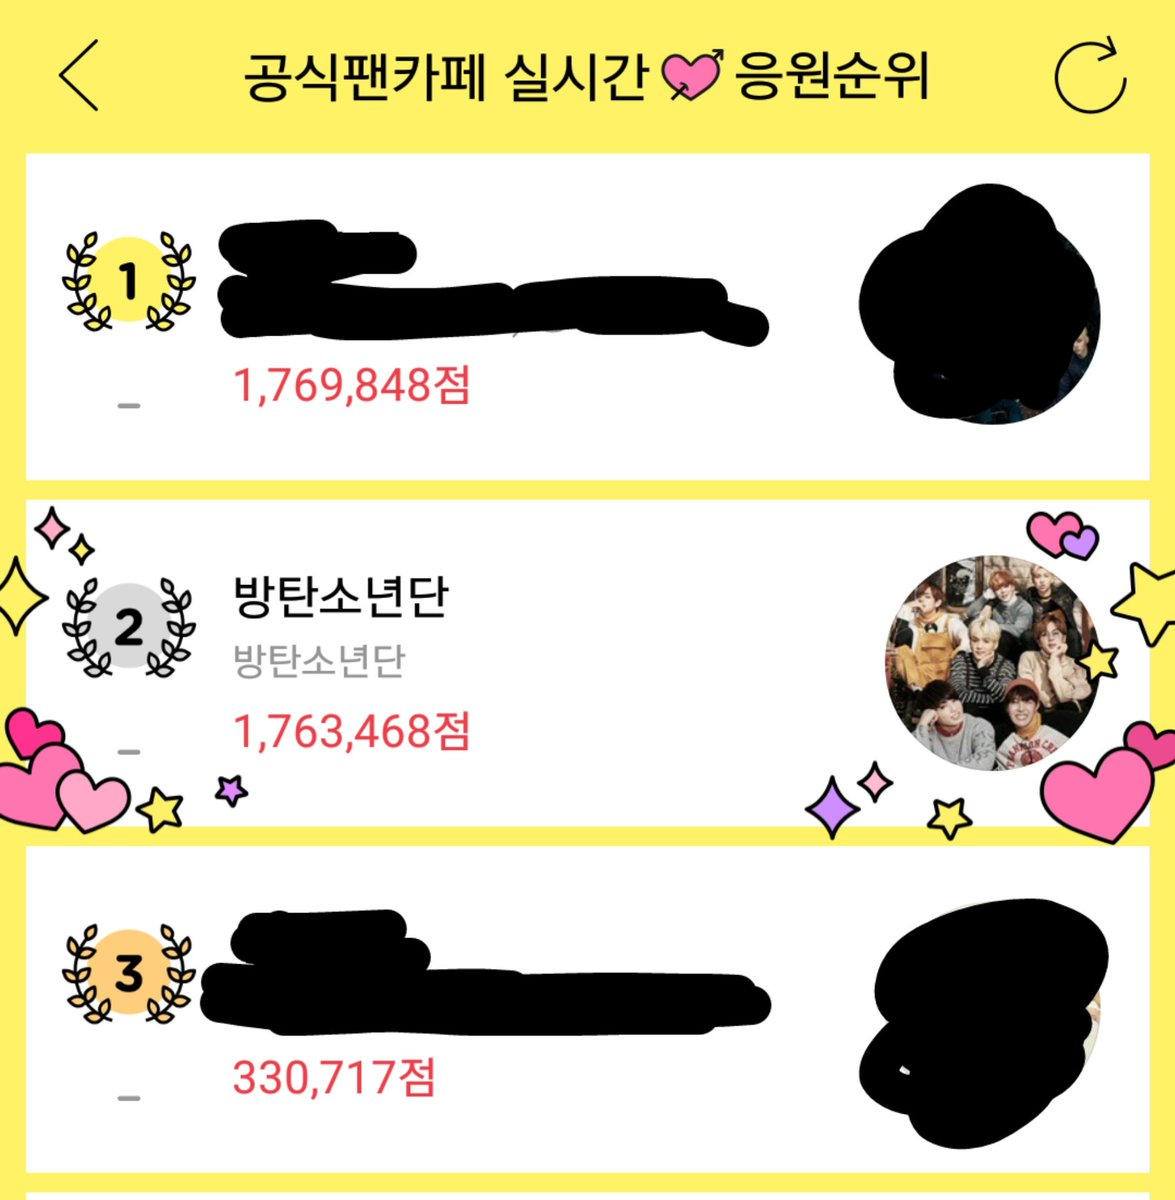 #BTS_DaumCafe_vote #TeamBTS #BTS #방탄소년단 We are so close to number 1 please vote now i know we can do it armys @BTS_twt<br>http://pic.twitter.com/UTkN4qApVK